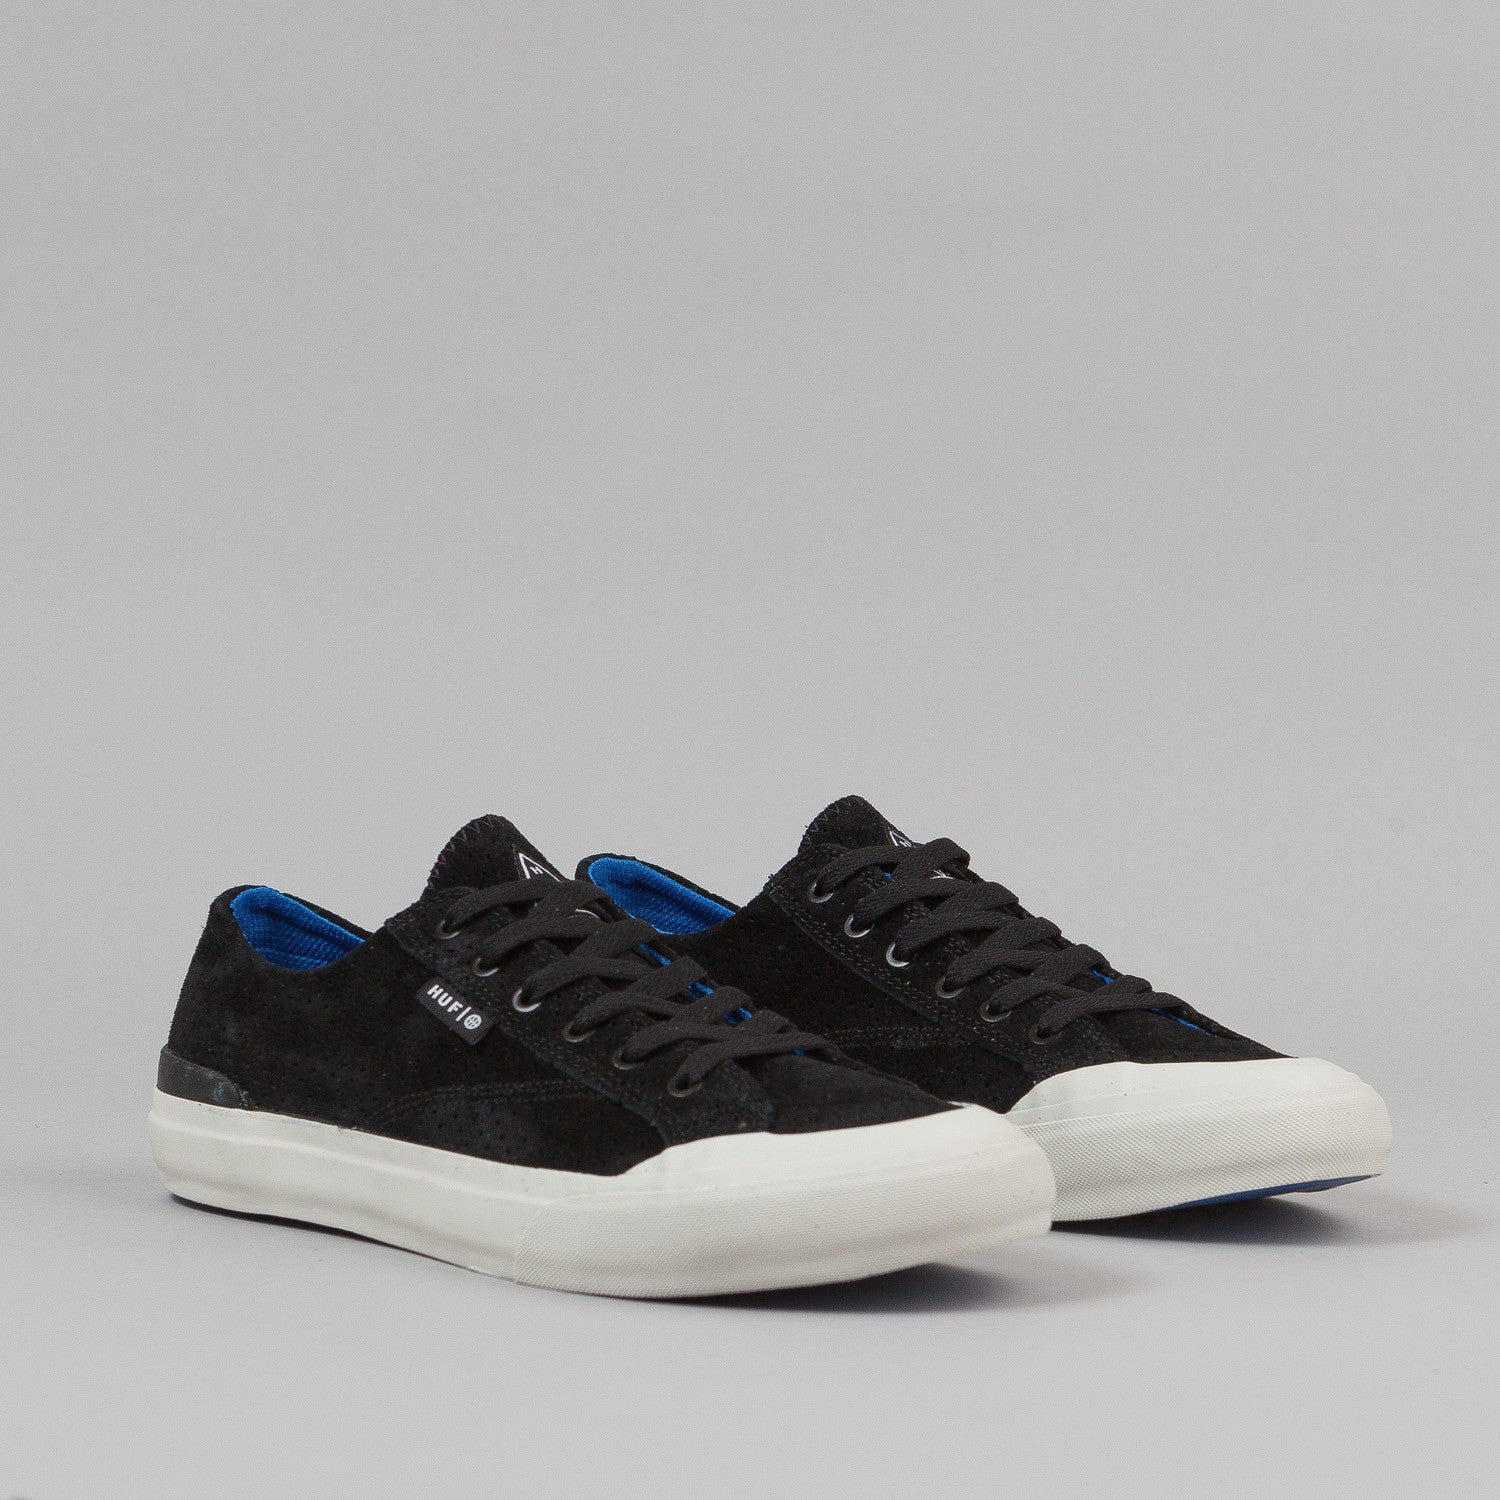 HUF Classic Lo Shoes - Black Perf / Royal